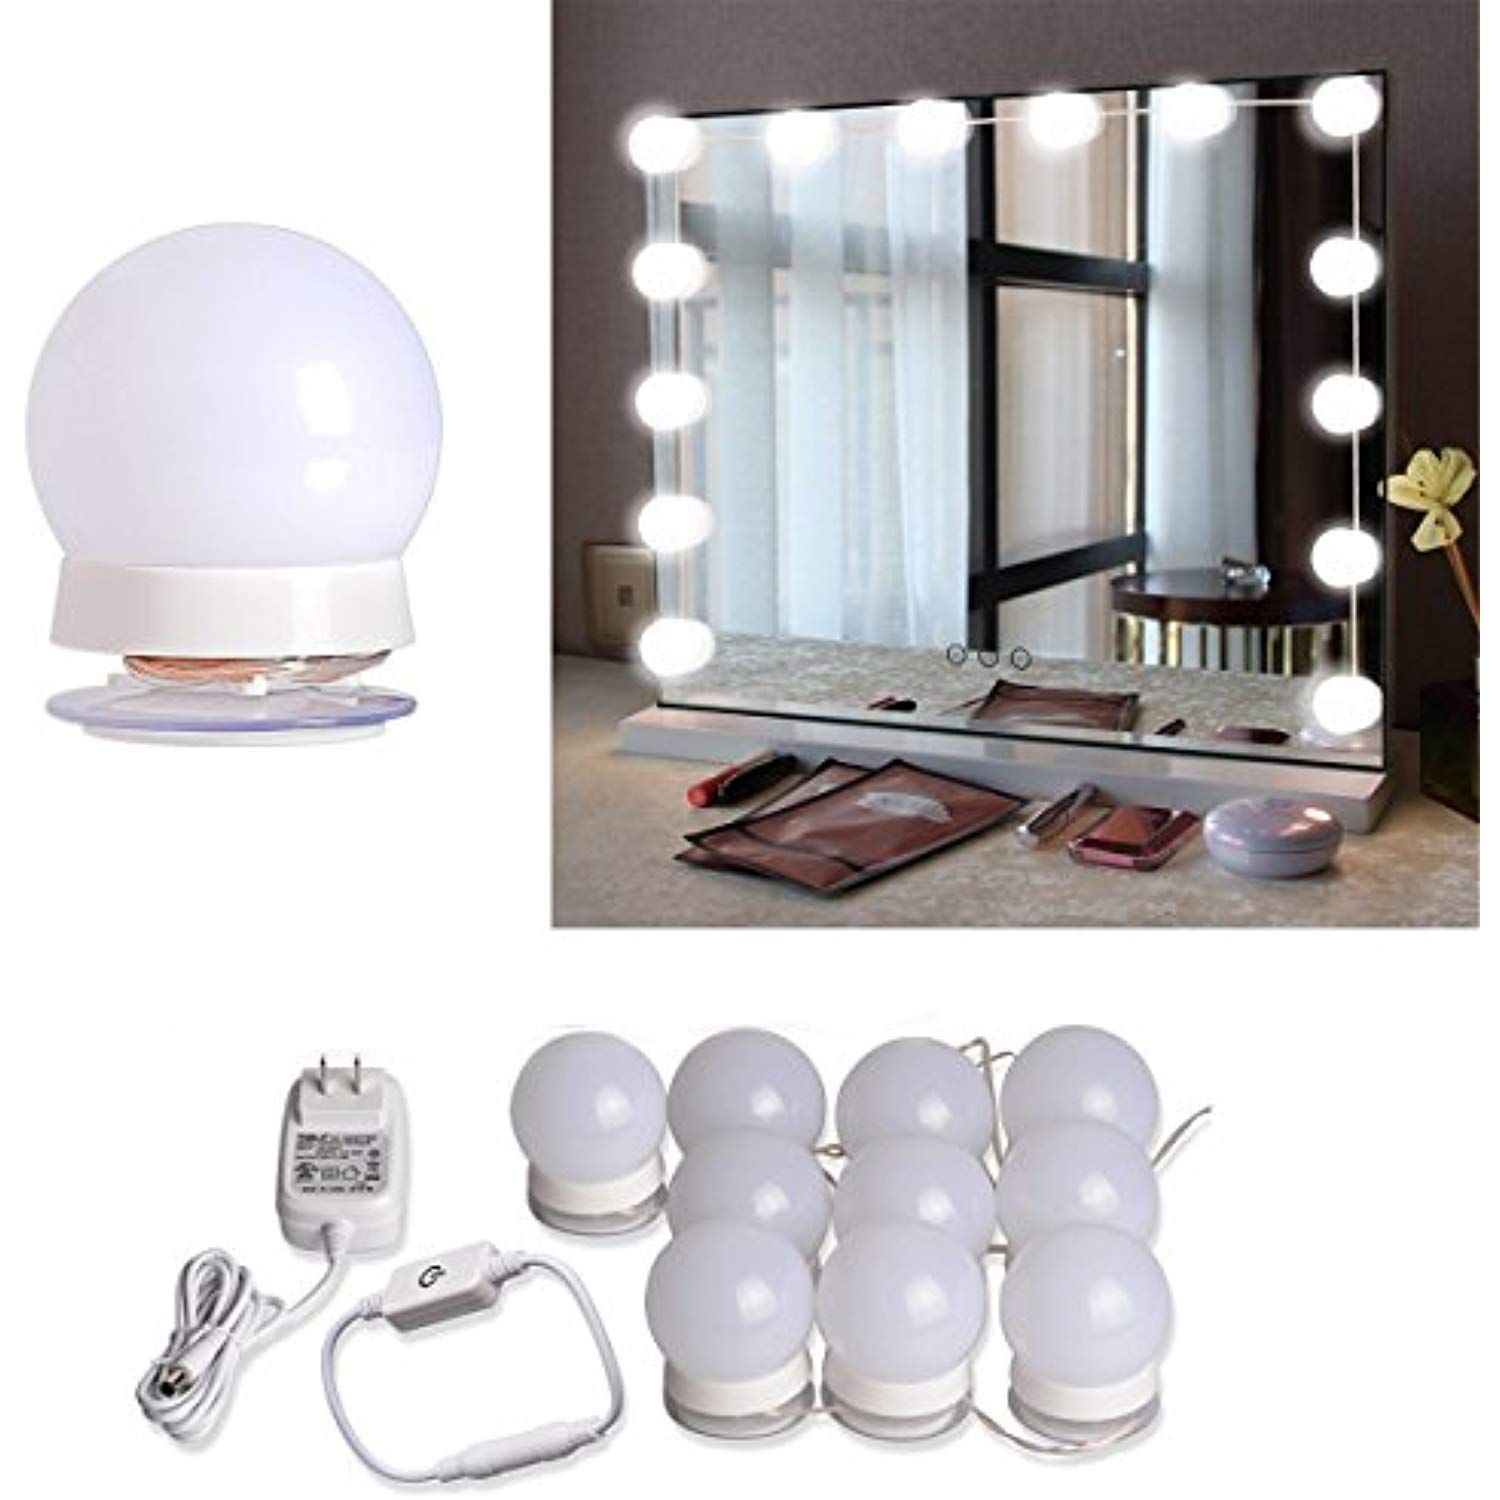 Hollywood Style Led Vanity Mirror Lights Kit With 10 Dimmable Led Light Bulbs And Flexible Strip Fo Mirror With Lights Diy Vanity Mirror Mirror With Led Lights